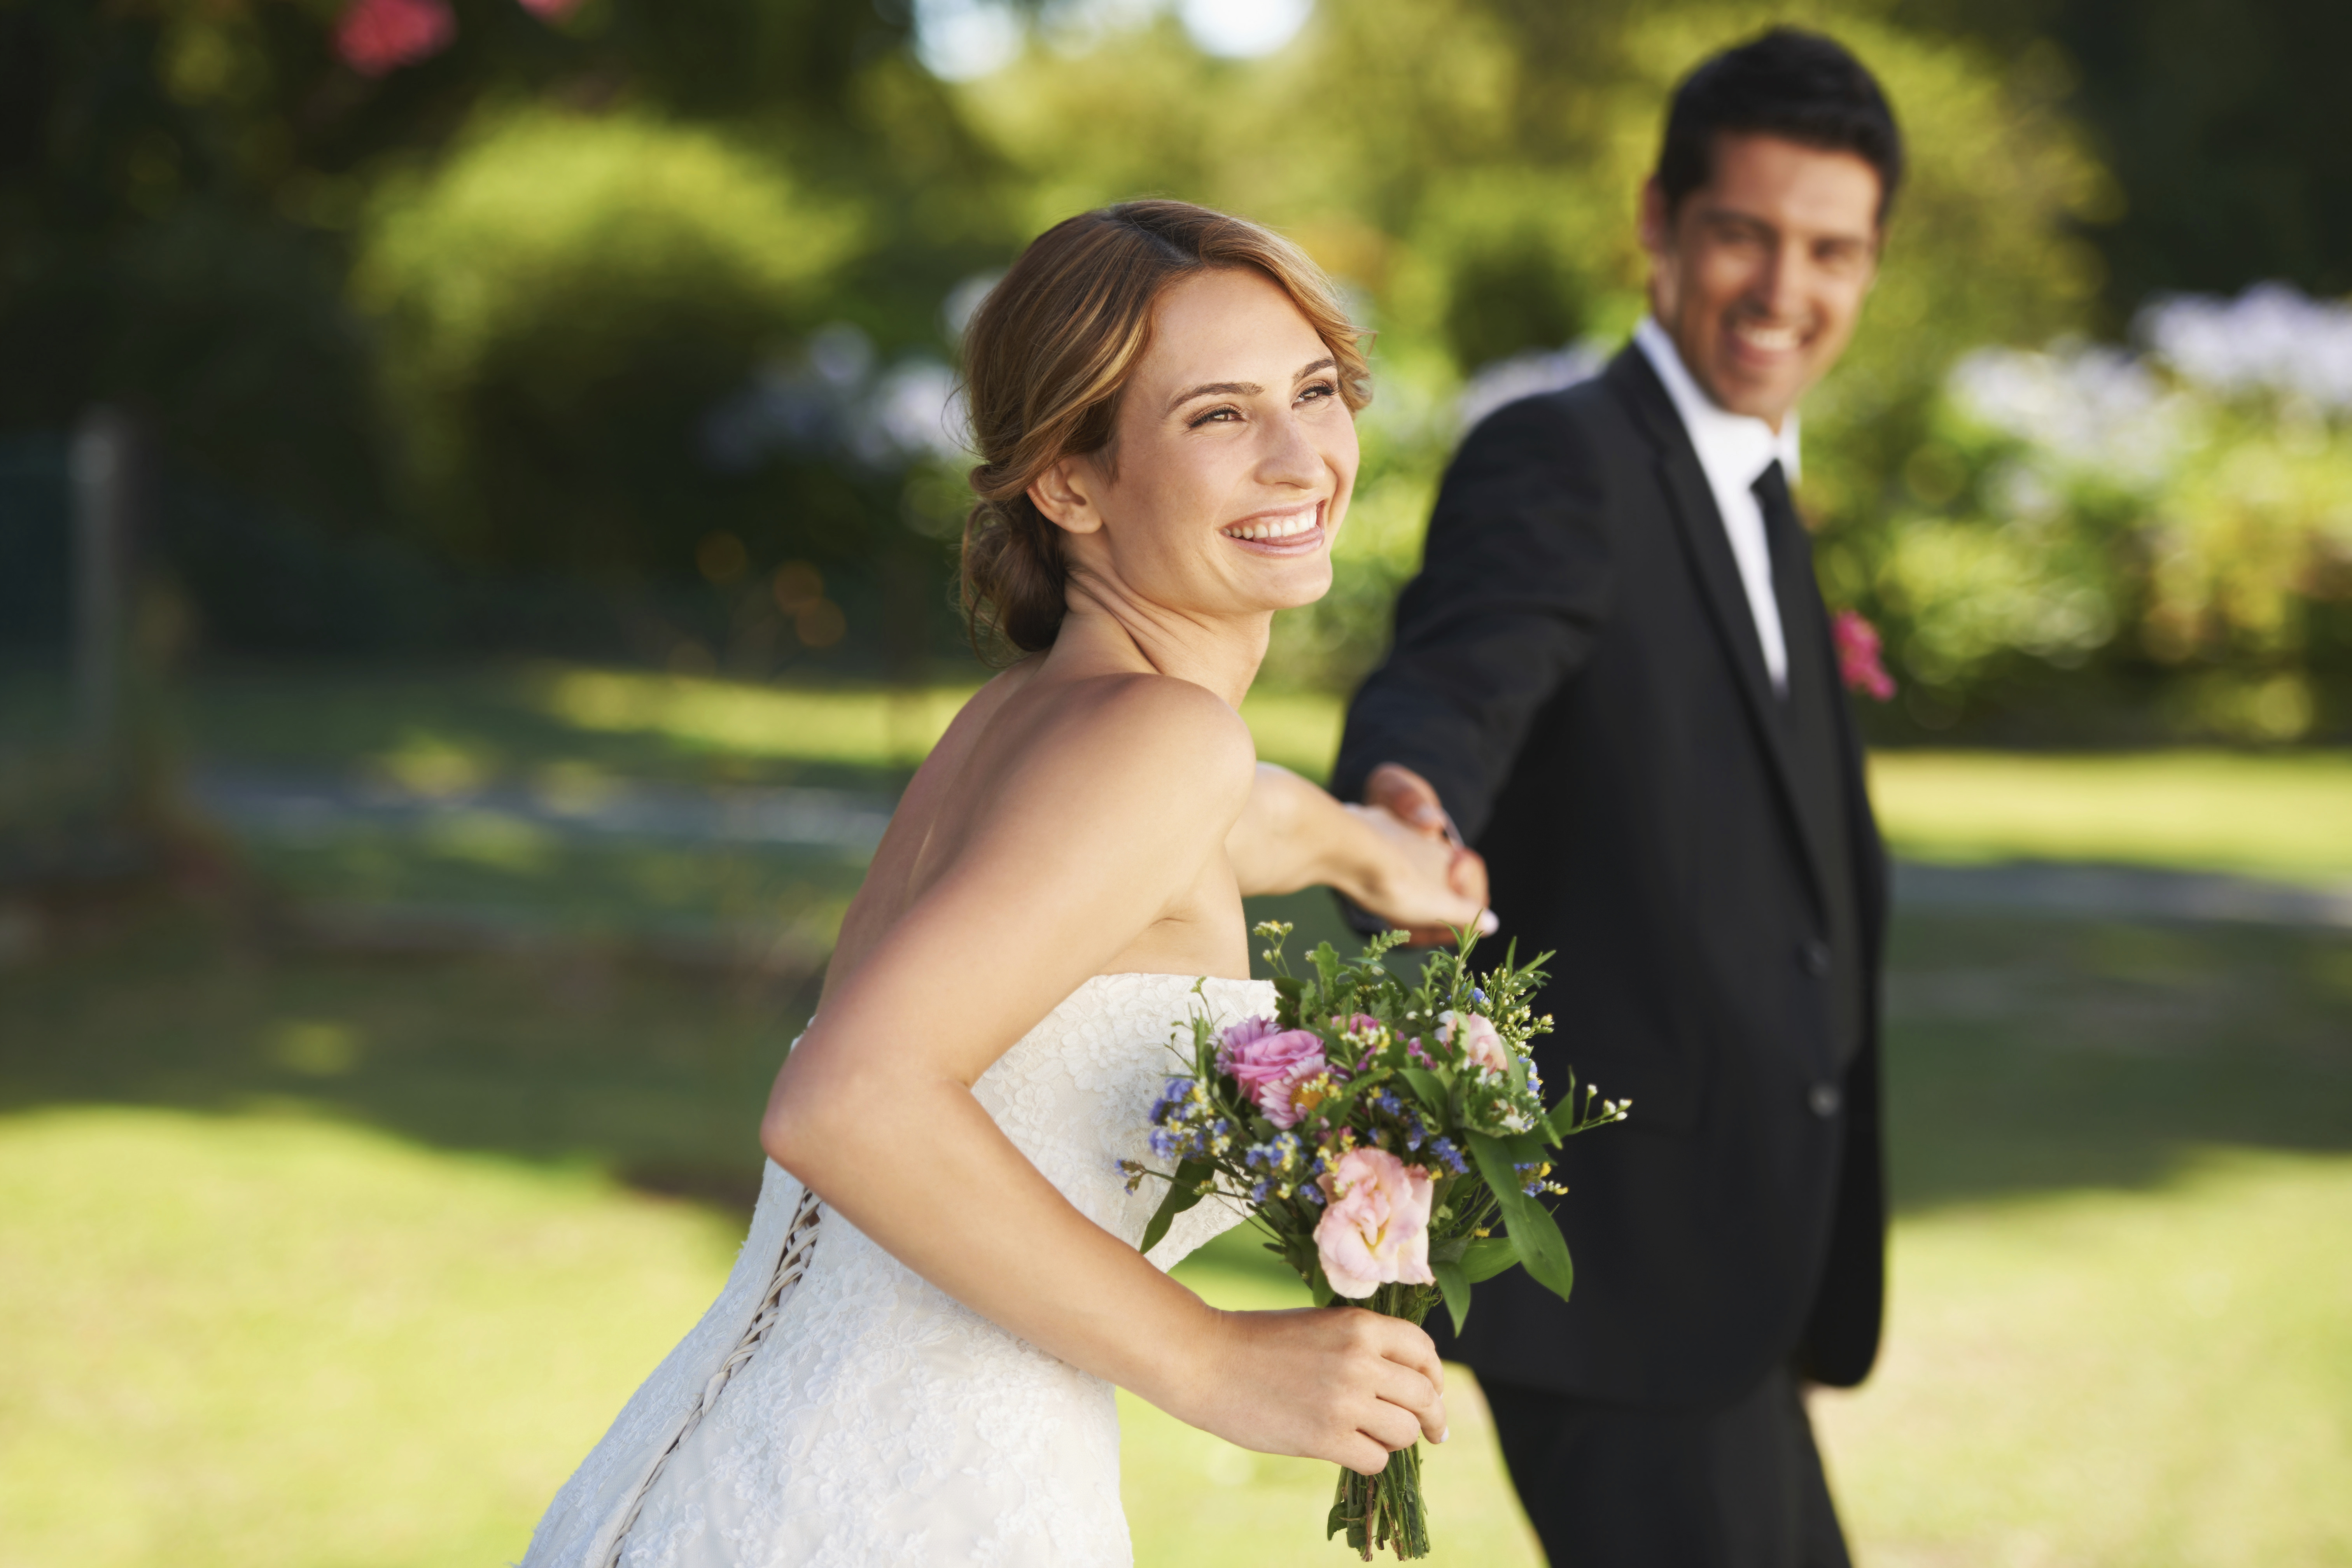 groom-pulling-bride-162493448